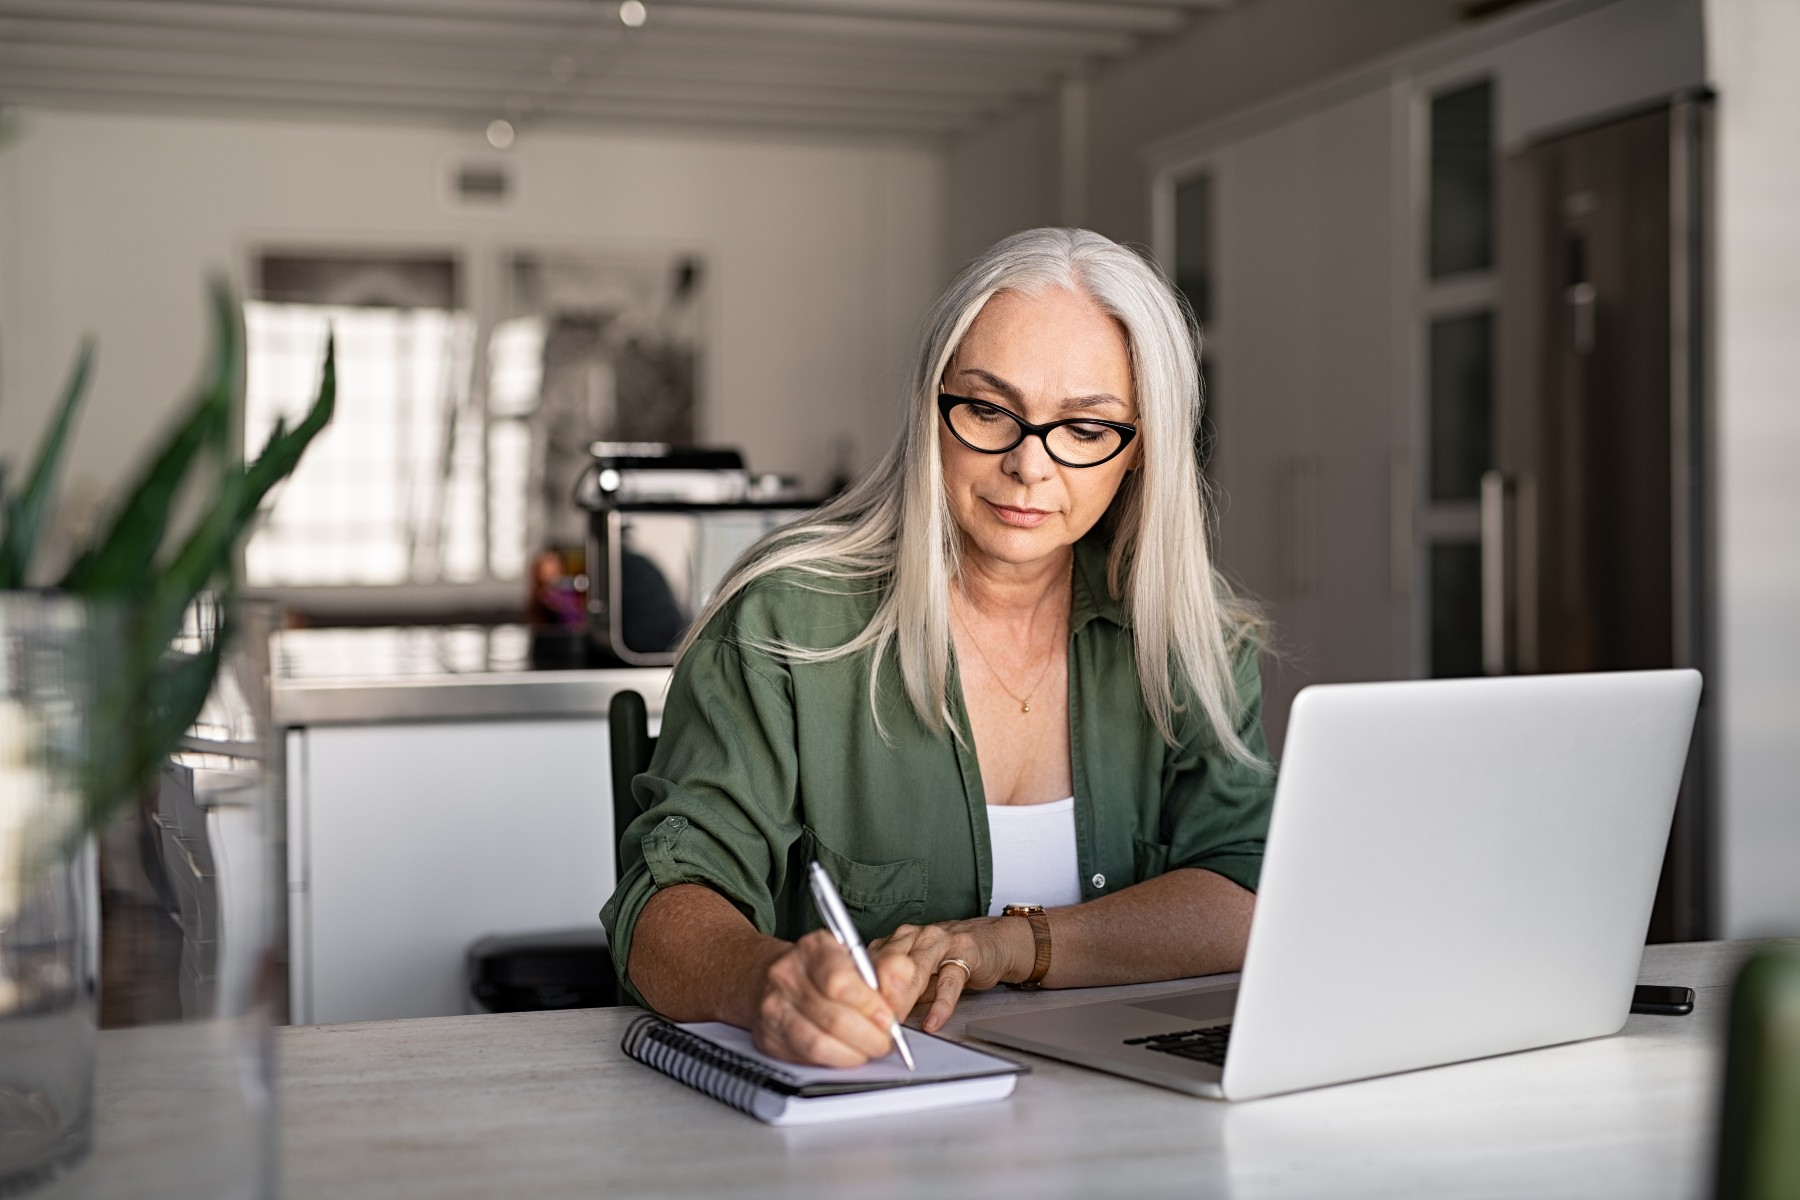 woman calculates retirement in Spain